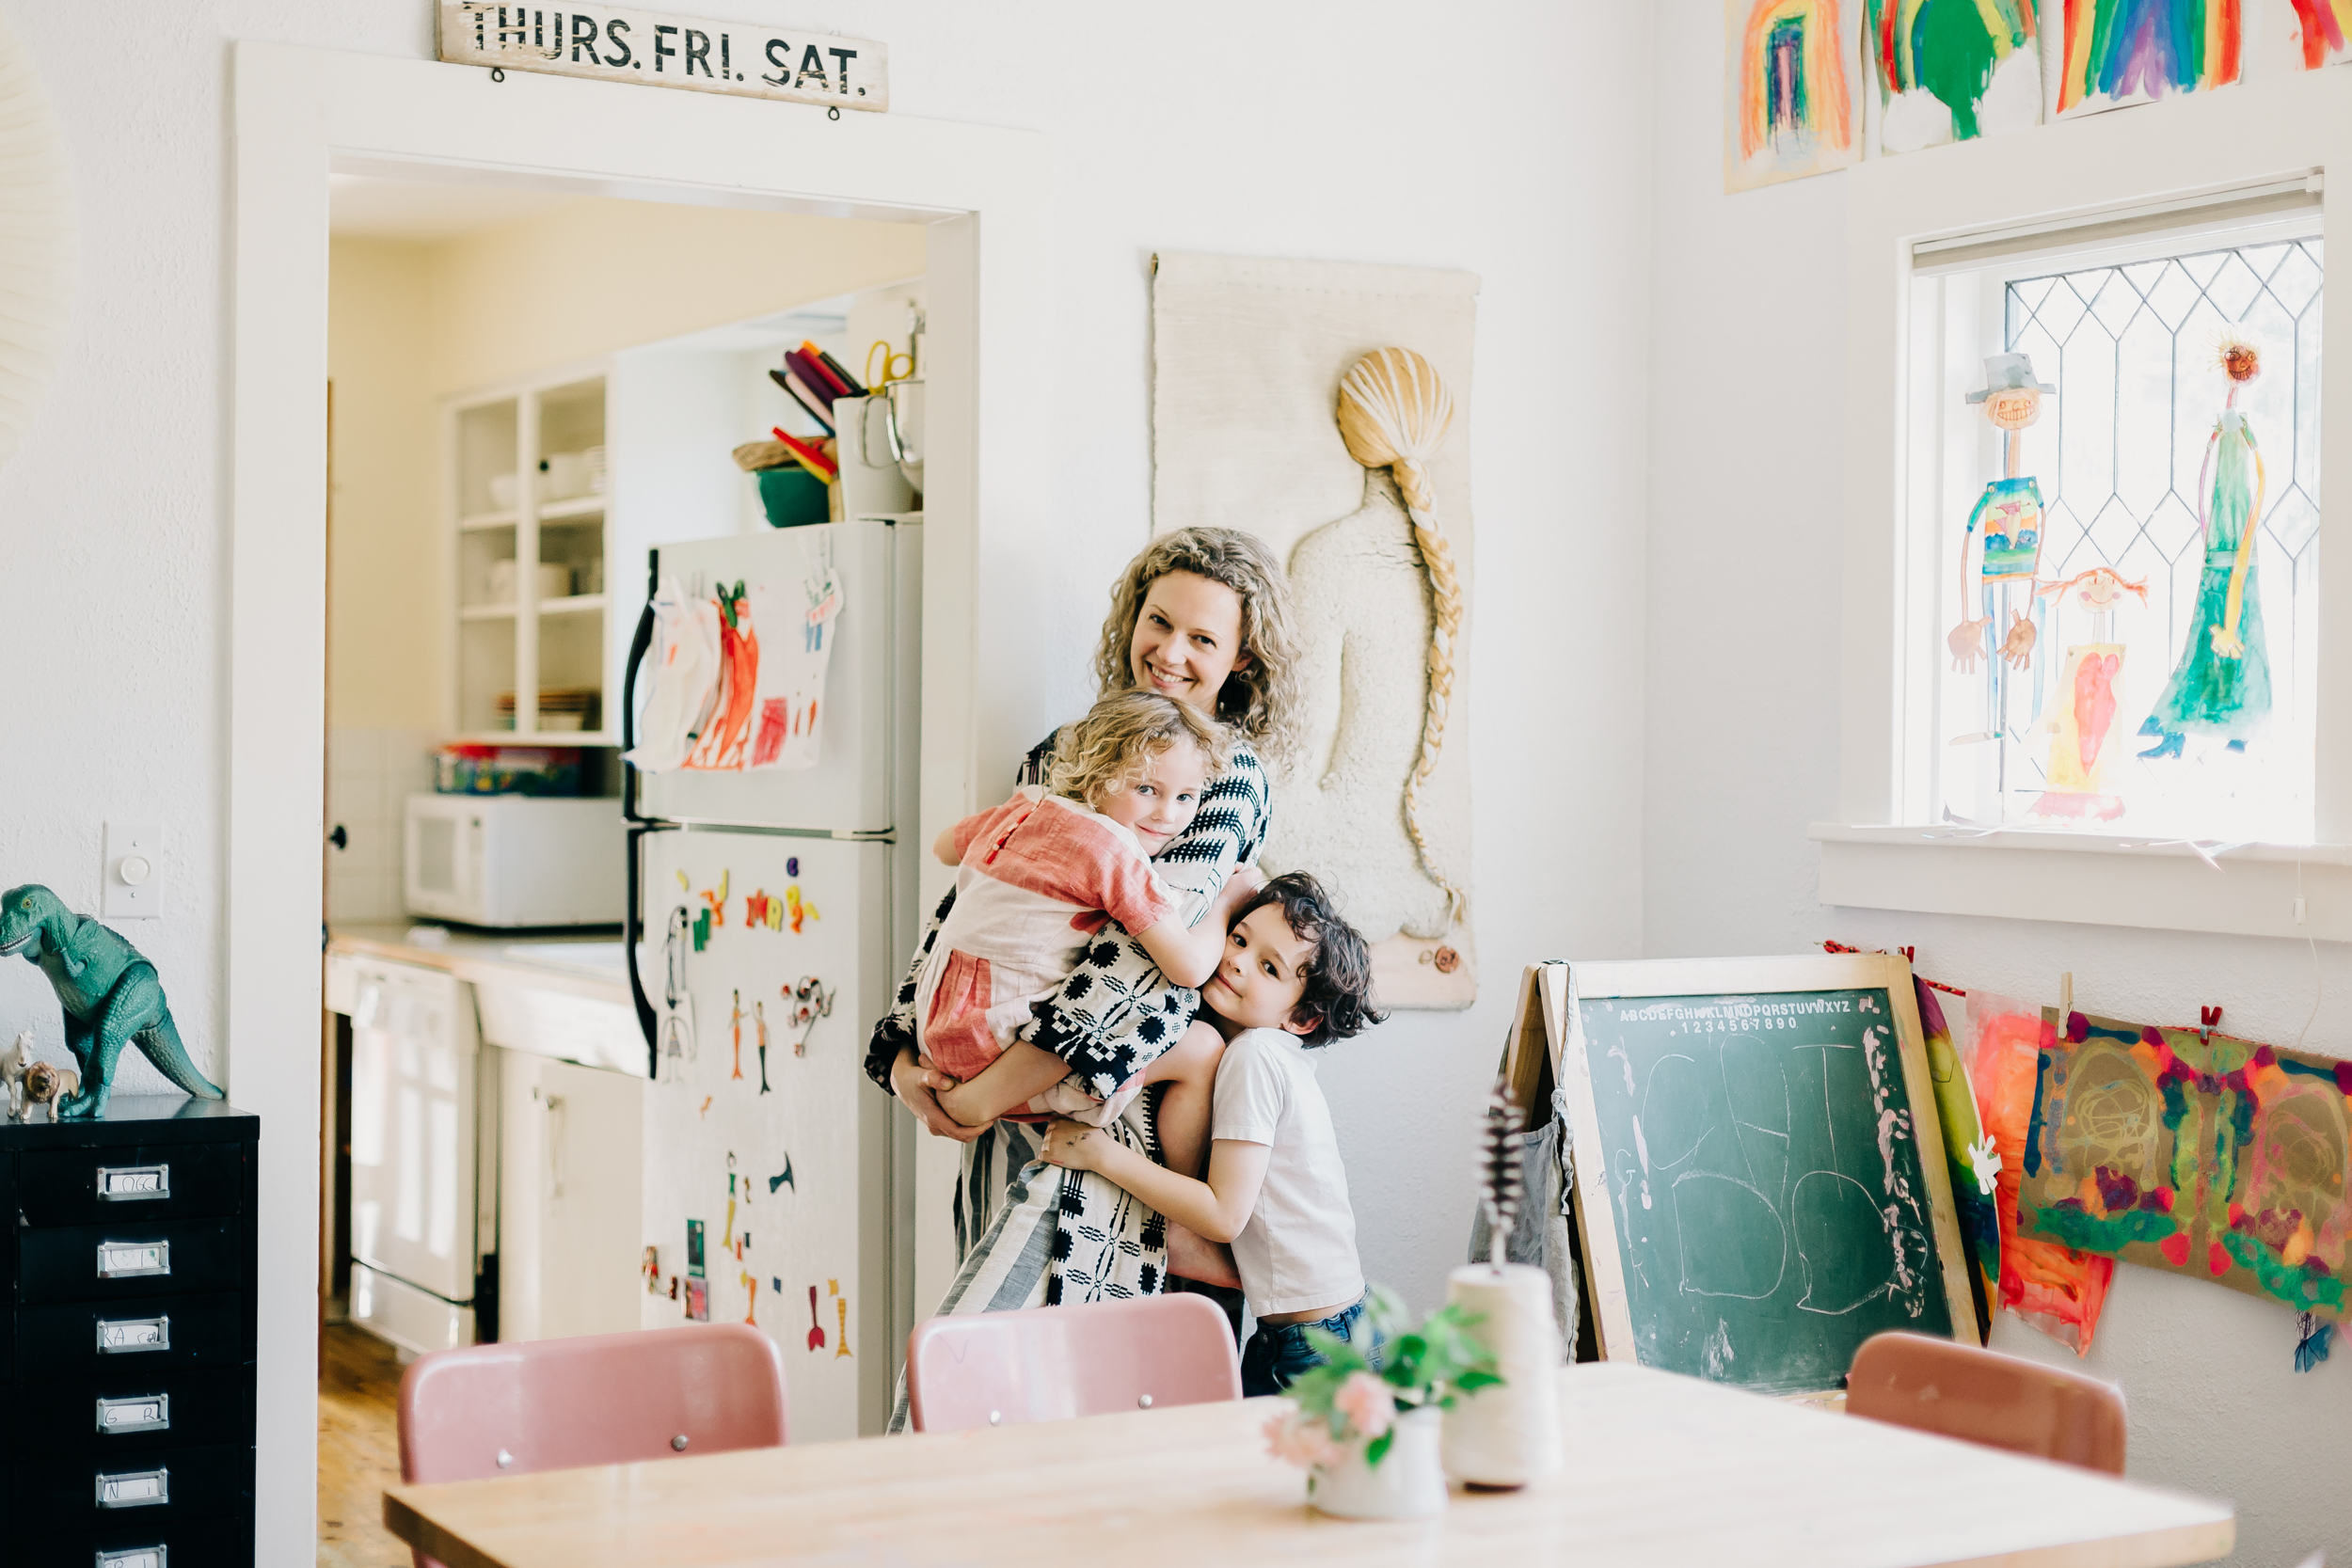 kdimoffphotography jenna wilson from ace & jig at home with her children.jpg